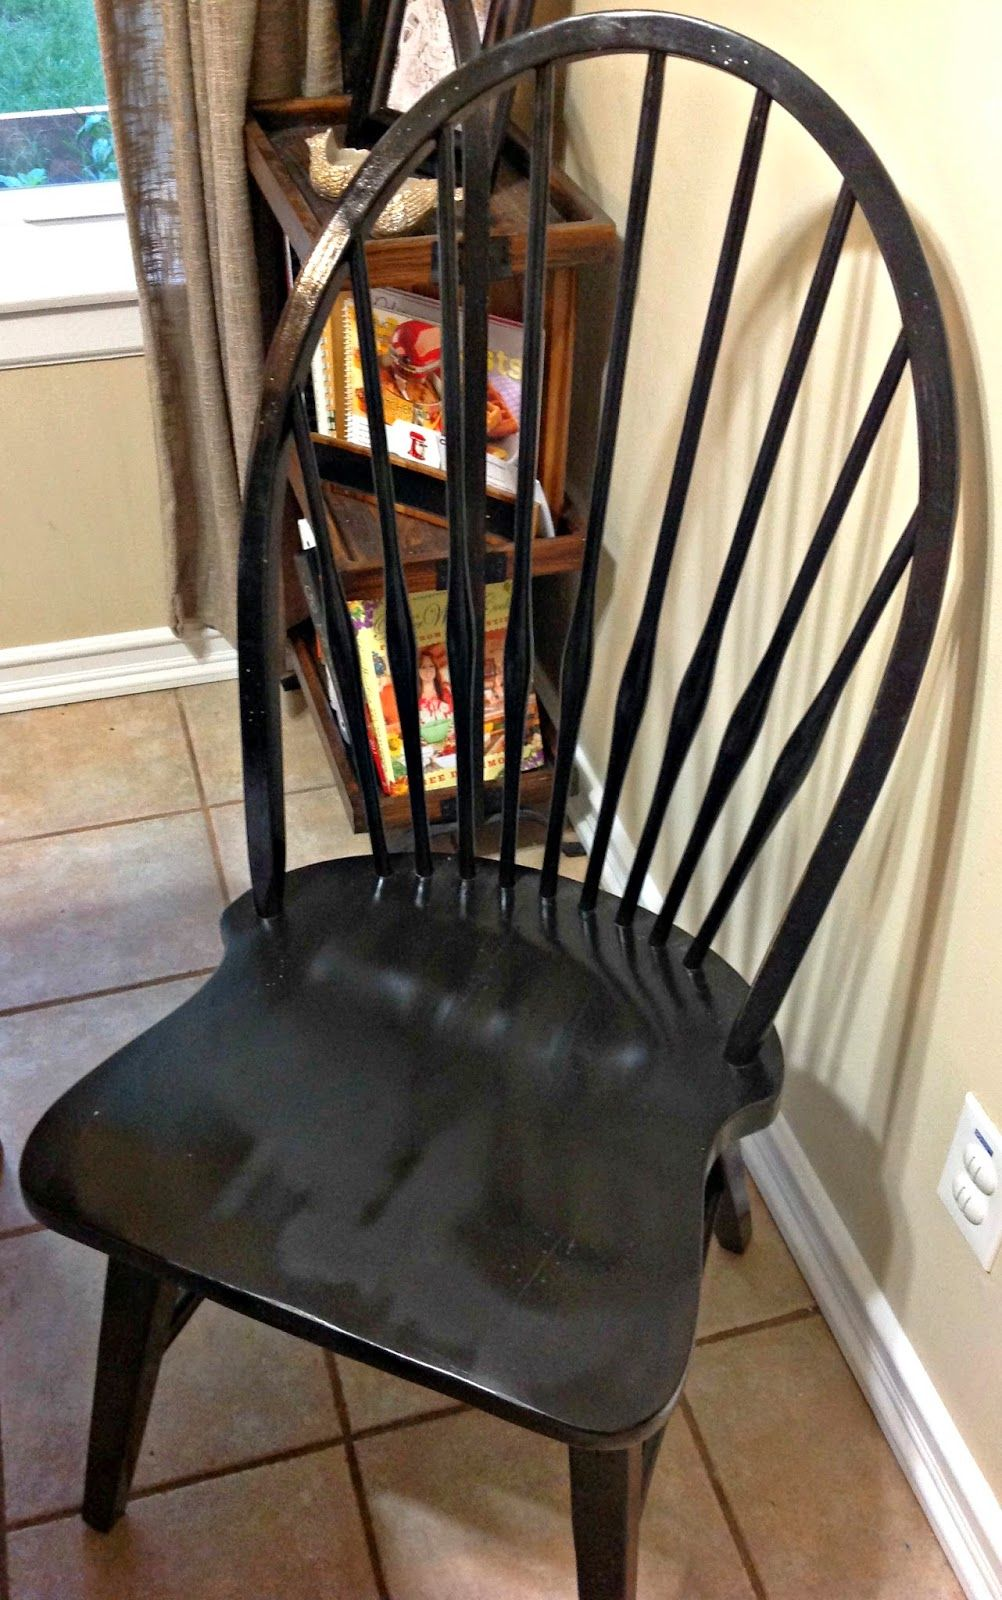 How To Repaint Wrought Iron Patio Furniture: How To Repaint Wood Chairs With Spray Paint! Windsor Chair